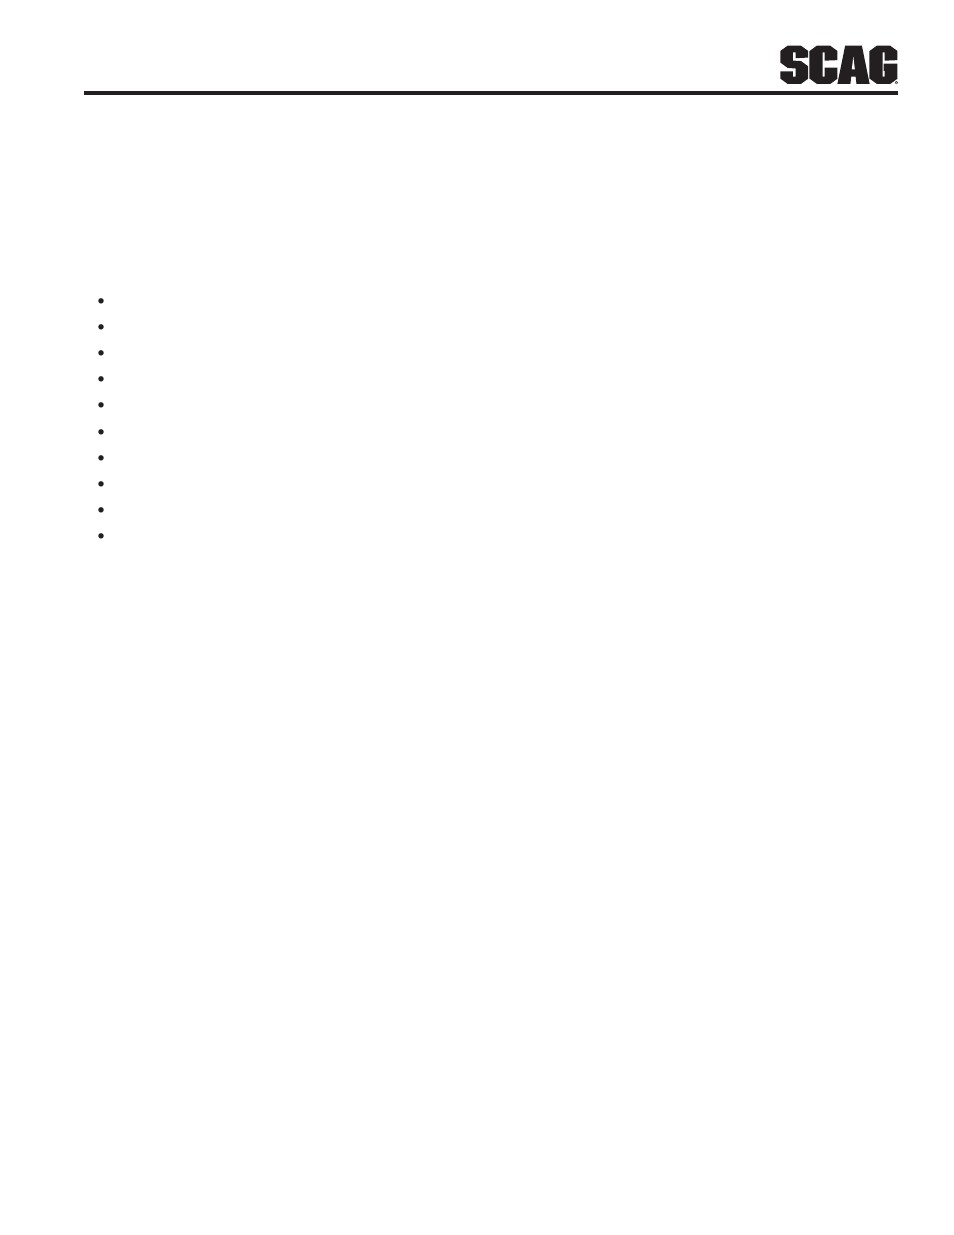 Illustrated Parts List  Section 8  1 Scag Approved